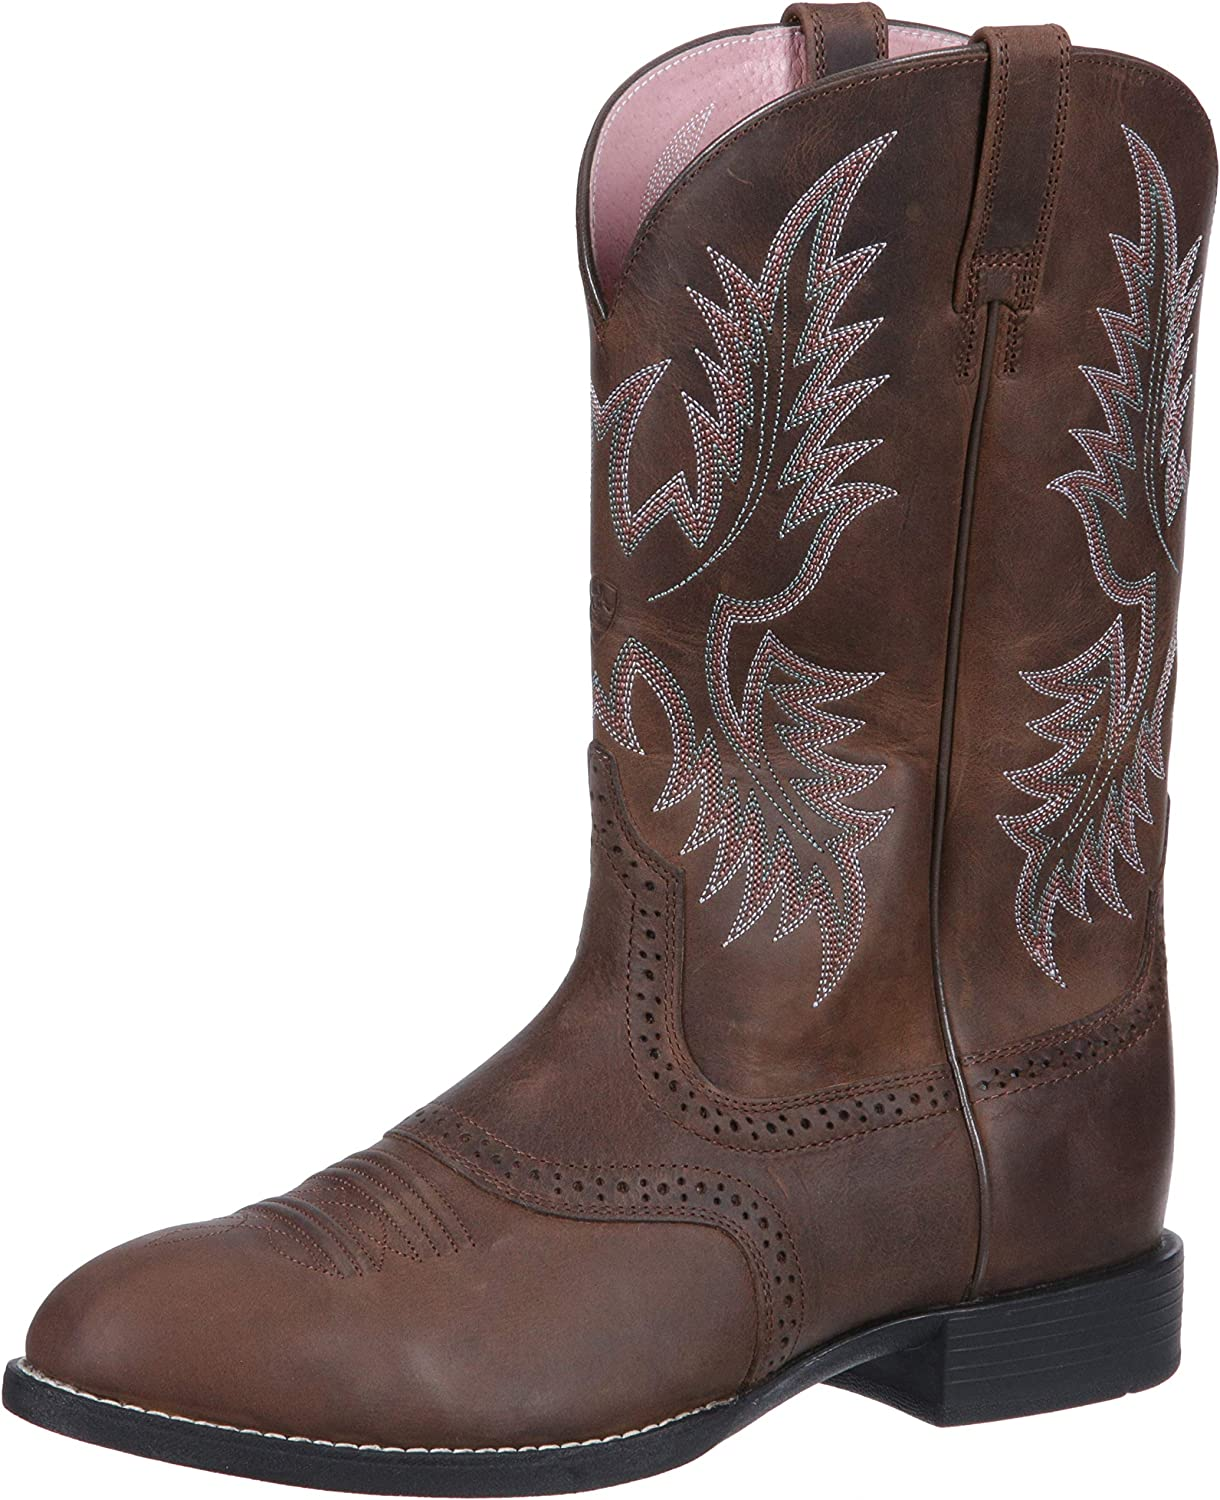 Ariat Women's Heritage Stockman Western Boot, Driftwood Brown Driftwood Brown, 9.5 C US